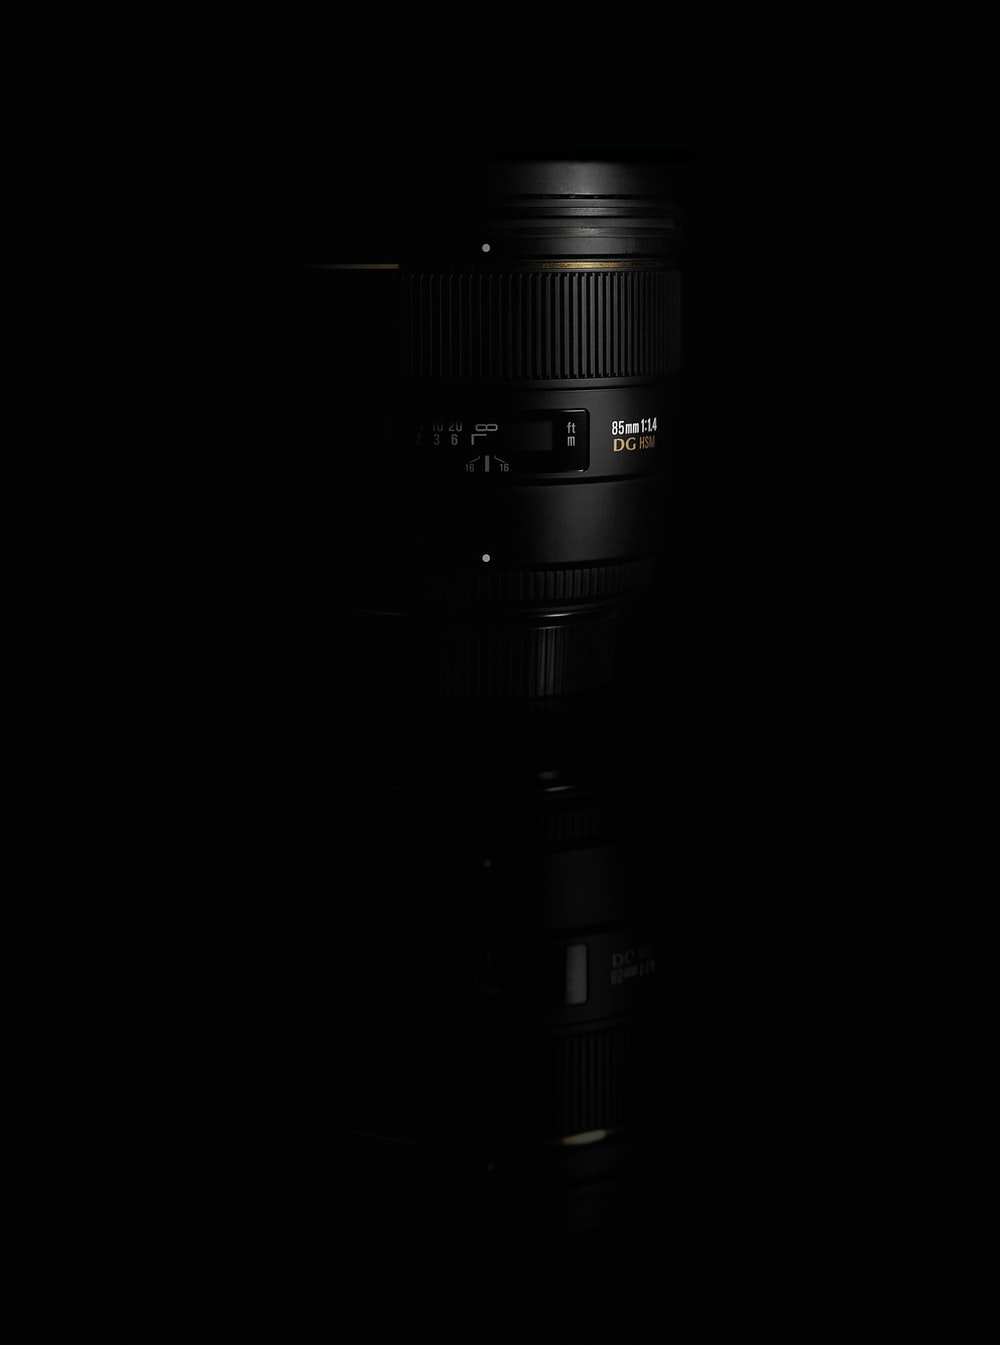 Camera Lens Black Background Pictures Download Free Images On Unsplash